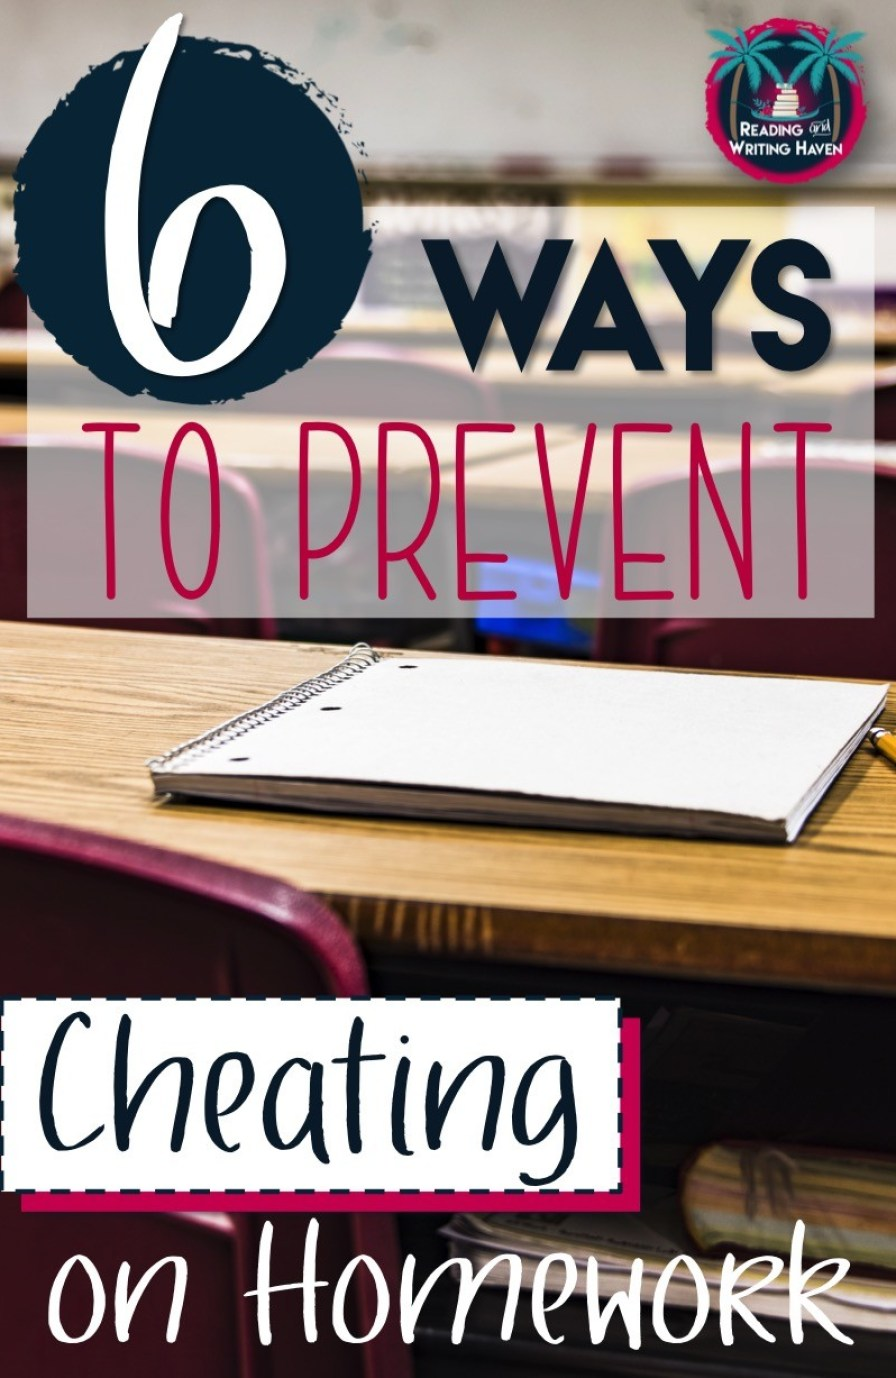 Are your students cheating on homework? The cheating epidemic is one of the most stressful thorns in a teacher's side. Yet, preventing cheating on homework is not as complicated as one might think. Try one of these approaches in your classroom.